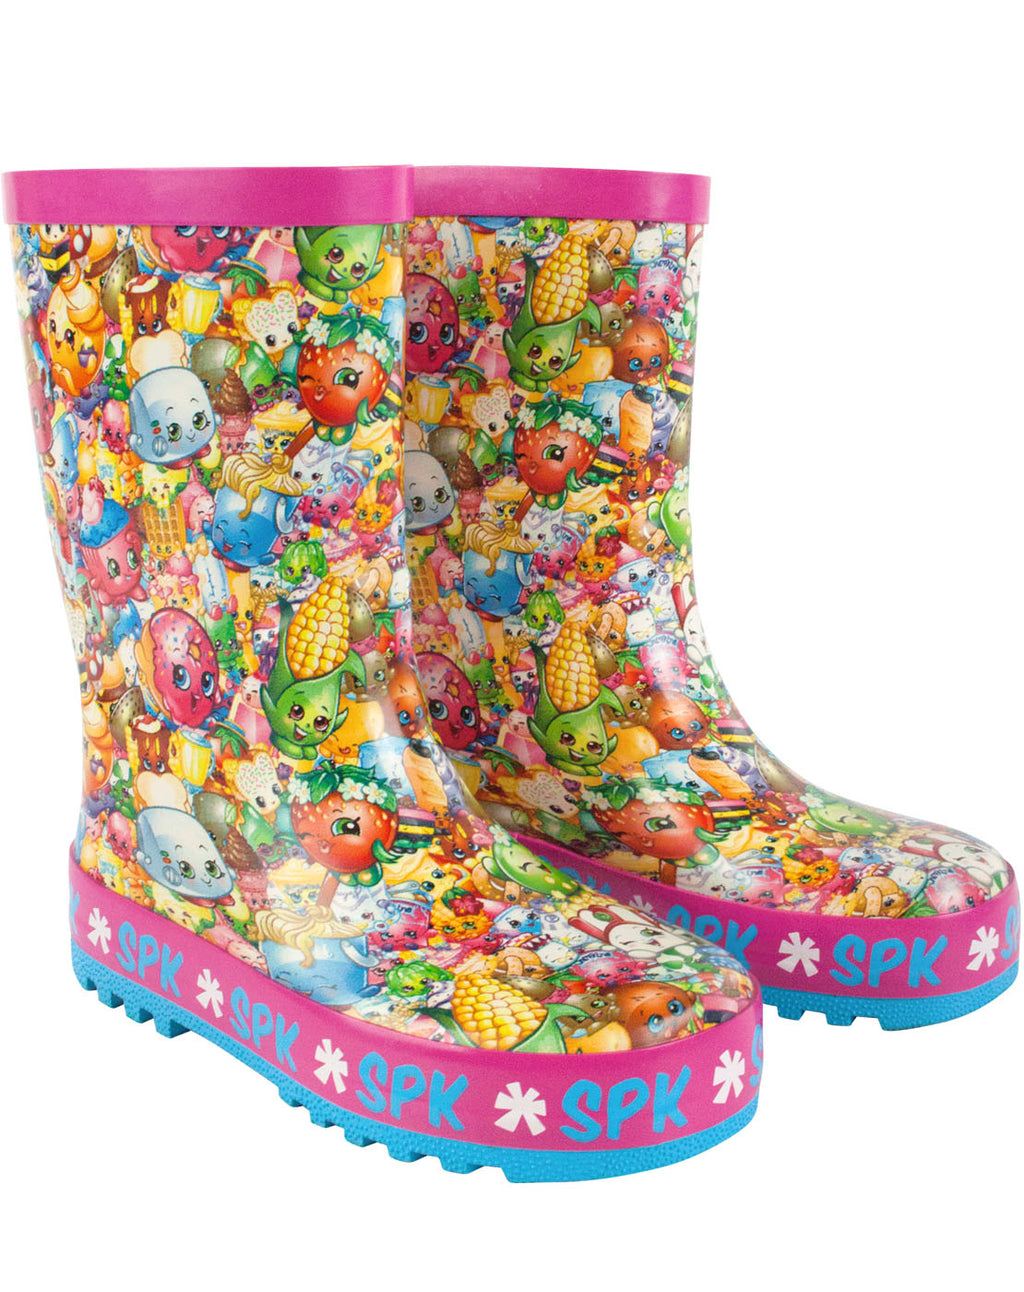 Shopkins All Over Print Girl's Wellies